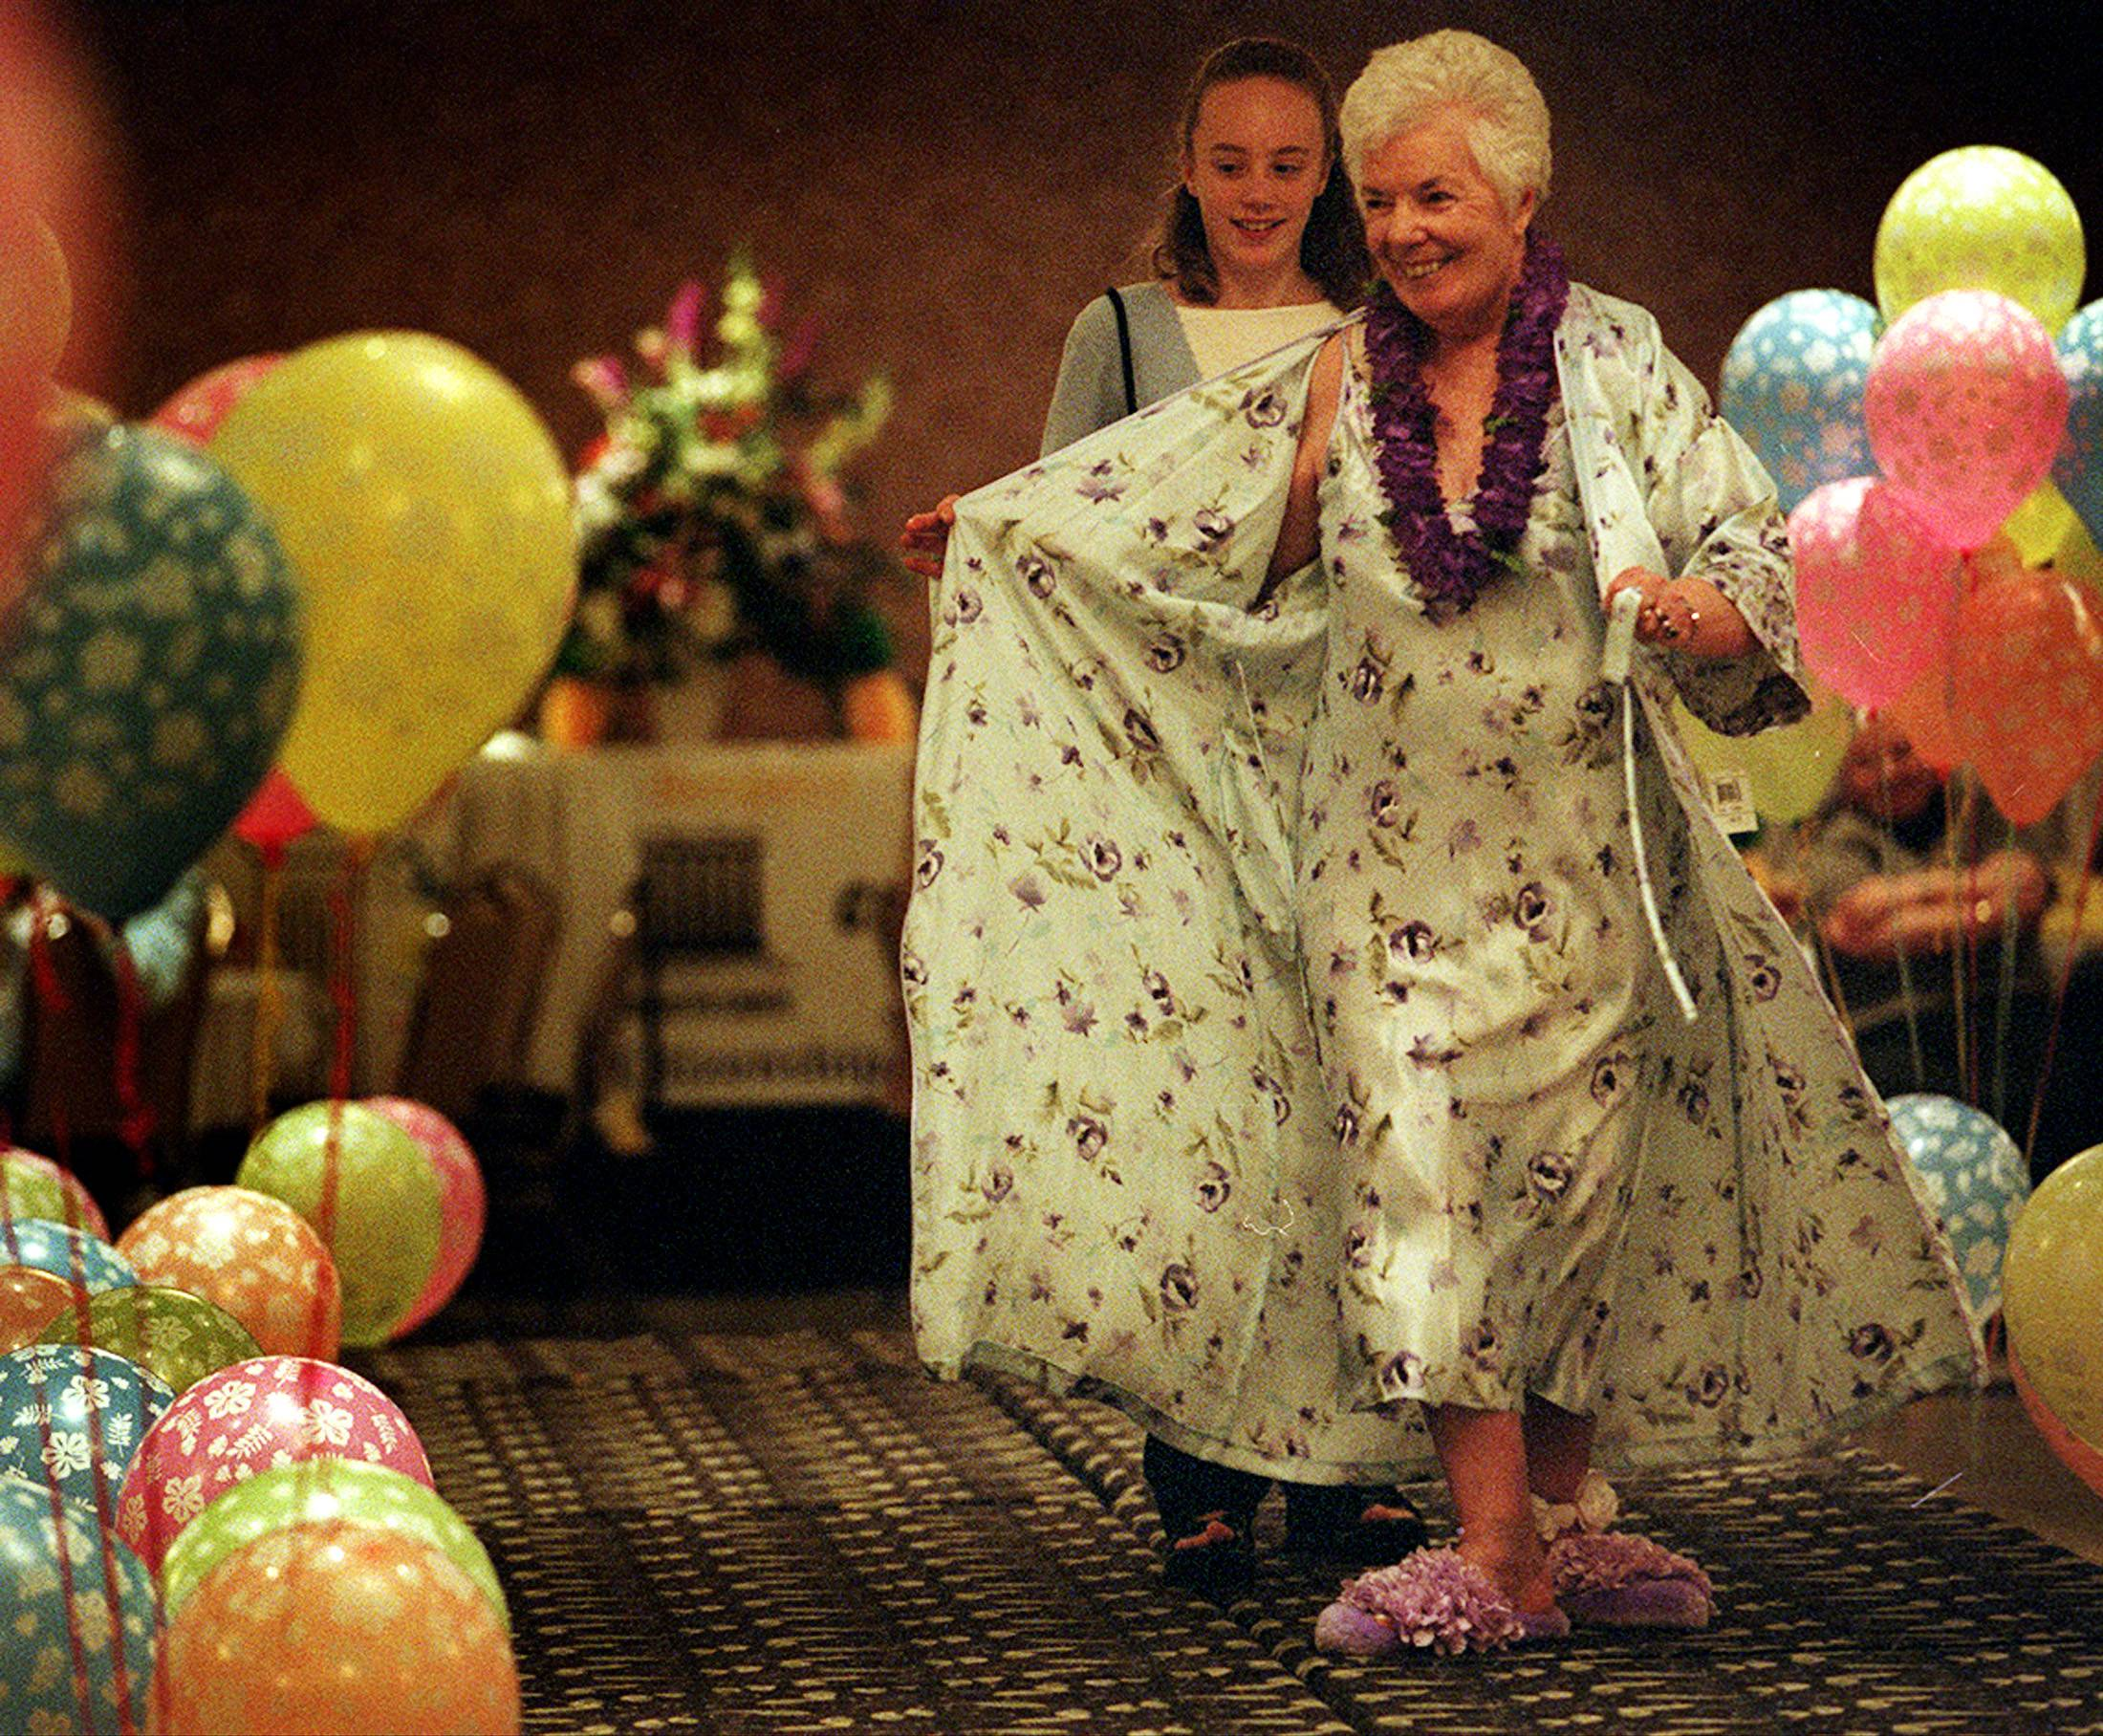 Helen Muha, of Bartlett and St. Charles, models an outfit at a fashion show for charity along with her granddaughter, Sarah Anderson in 2002.